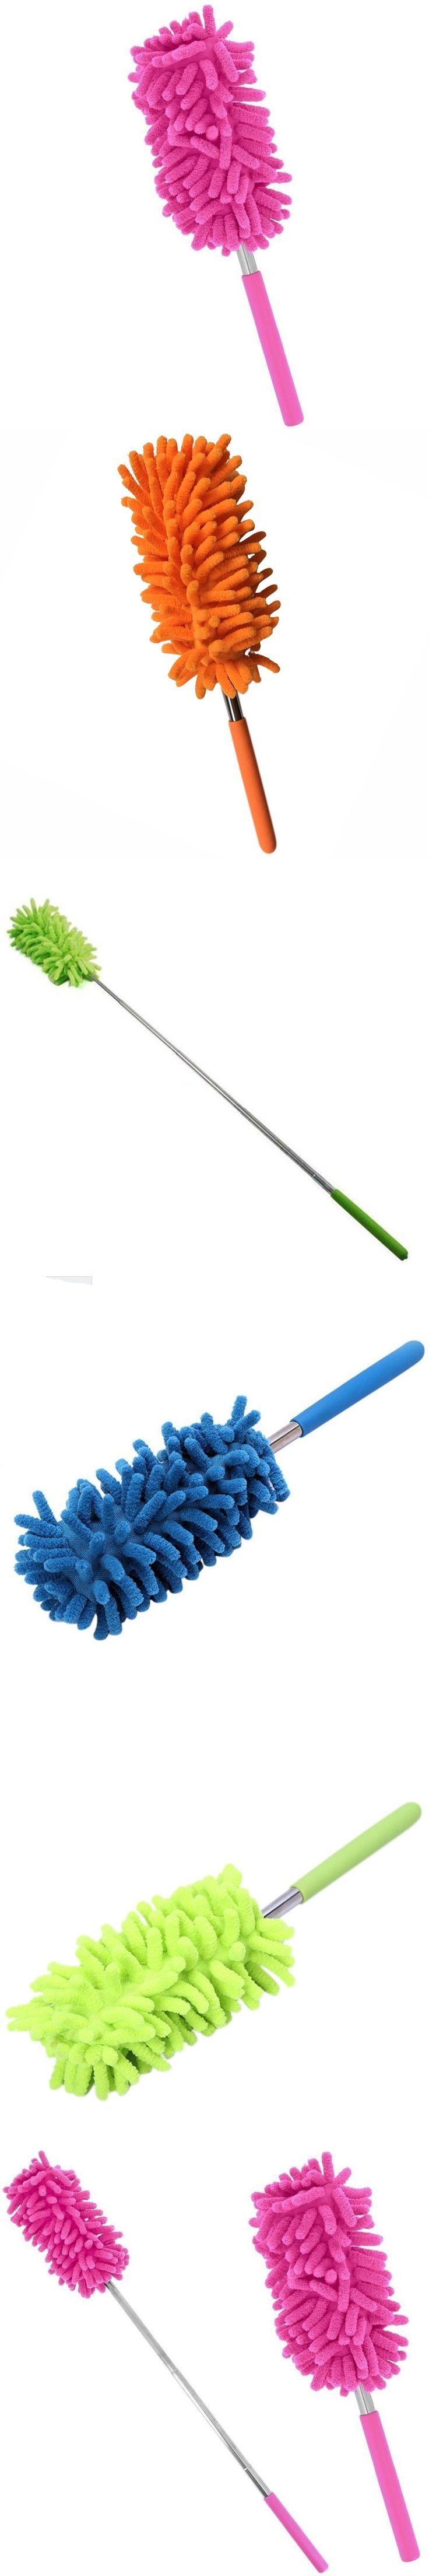 Clean Duster Car Wash Brush mini stainless steel feather Dusters Brushes Cleaning Brushes Accessories Home Improvement